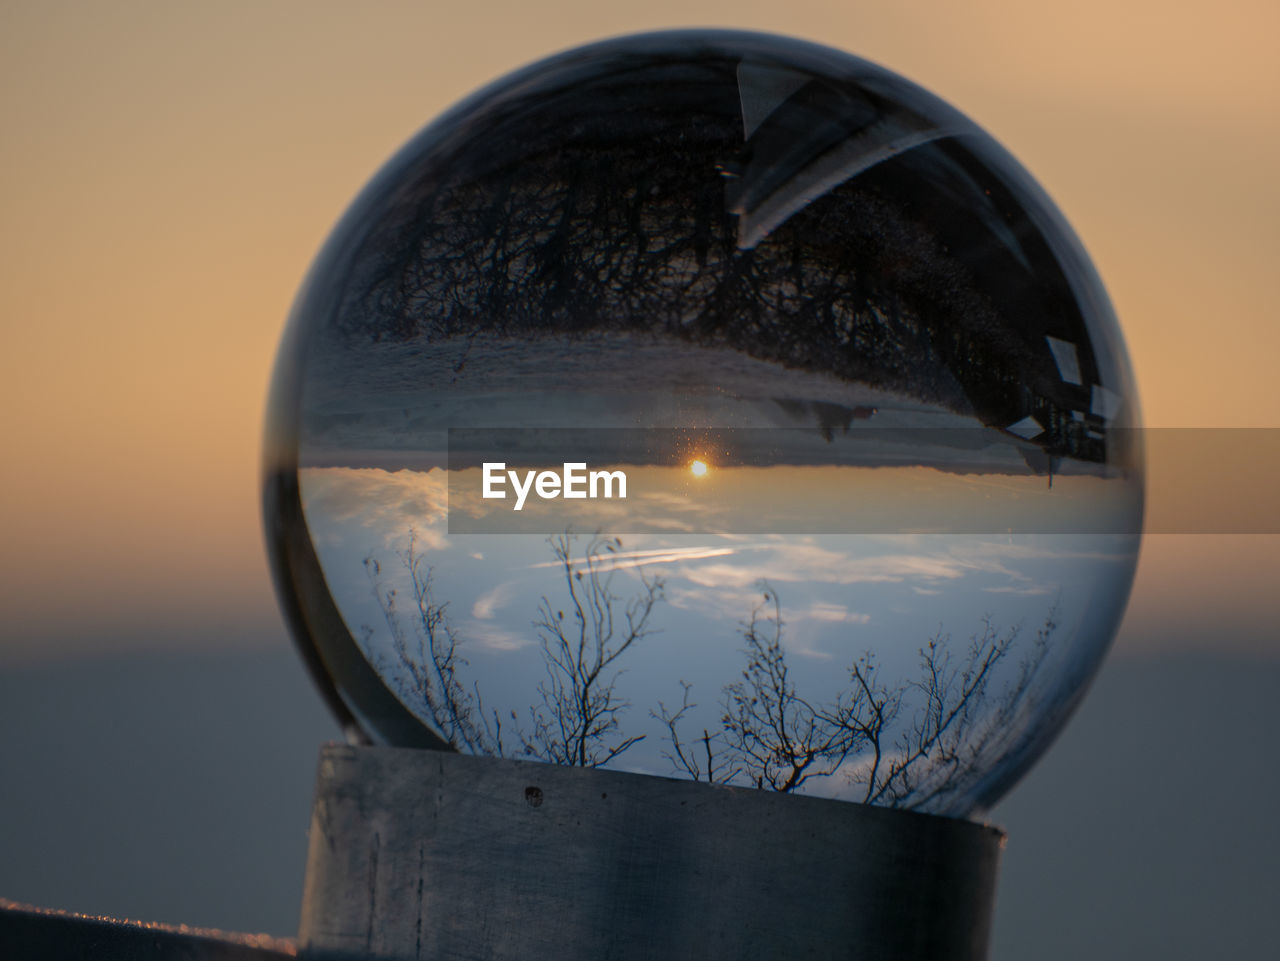 sky, sunset, nature, close-up, glass - material, transparent, no people, reflection, focus on foreground, sphere, outdoors, beauty in nature, scenics - nature, water, lighting equipment, plant, shape, circle